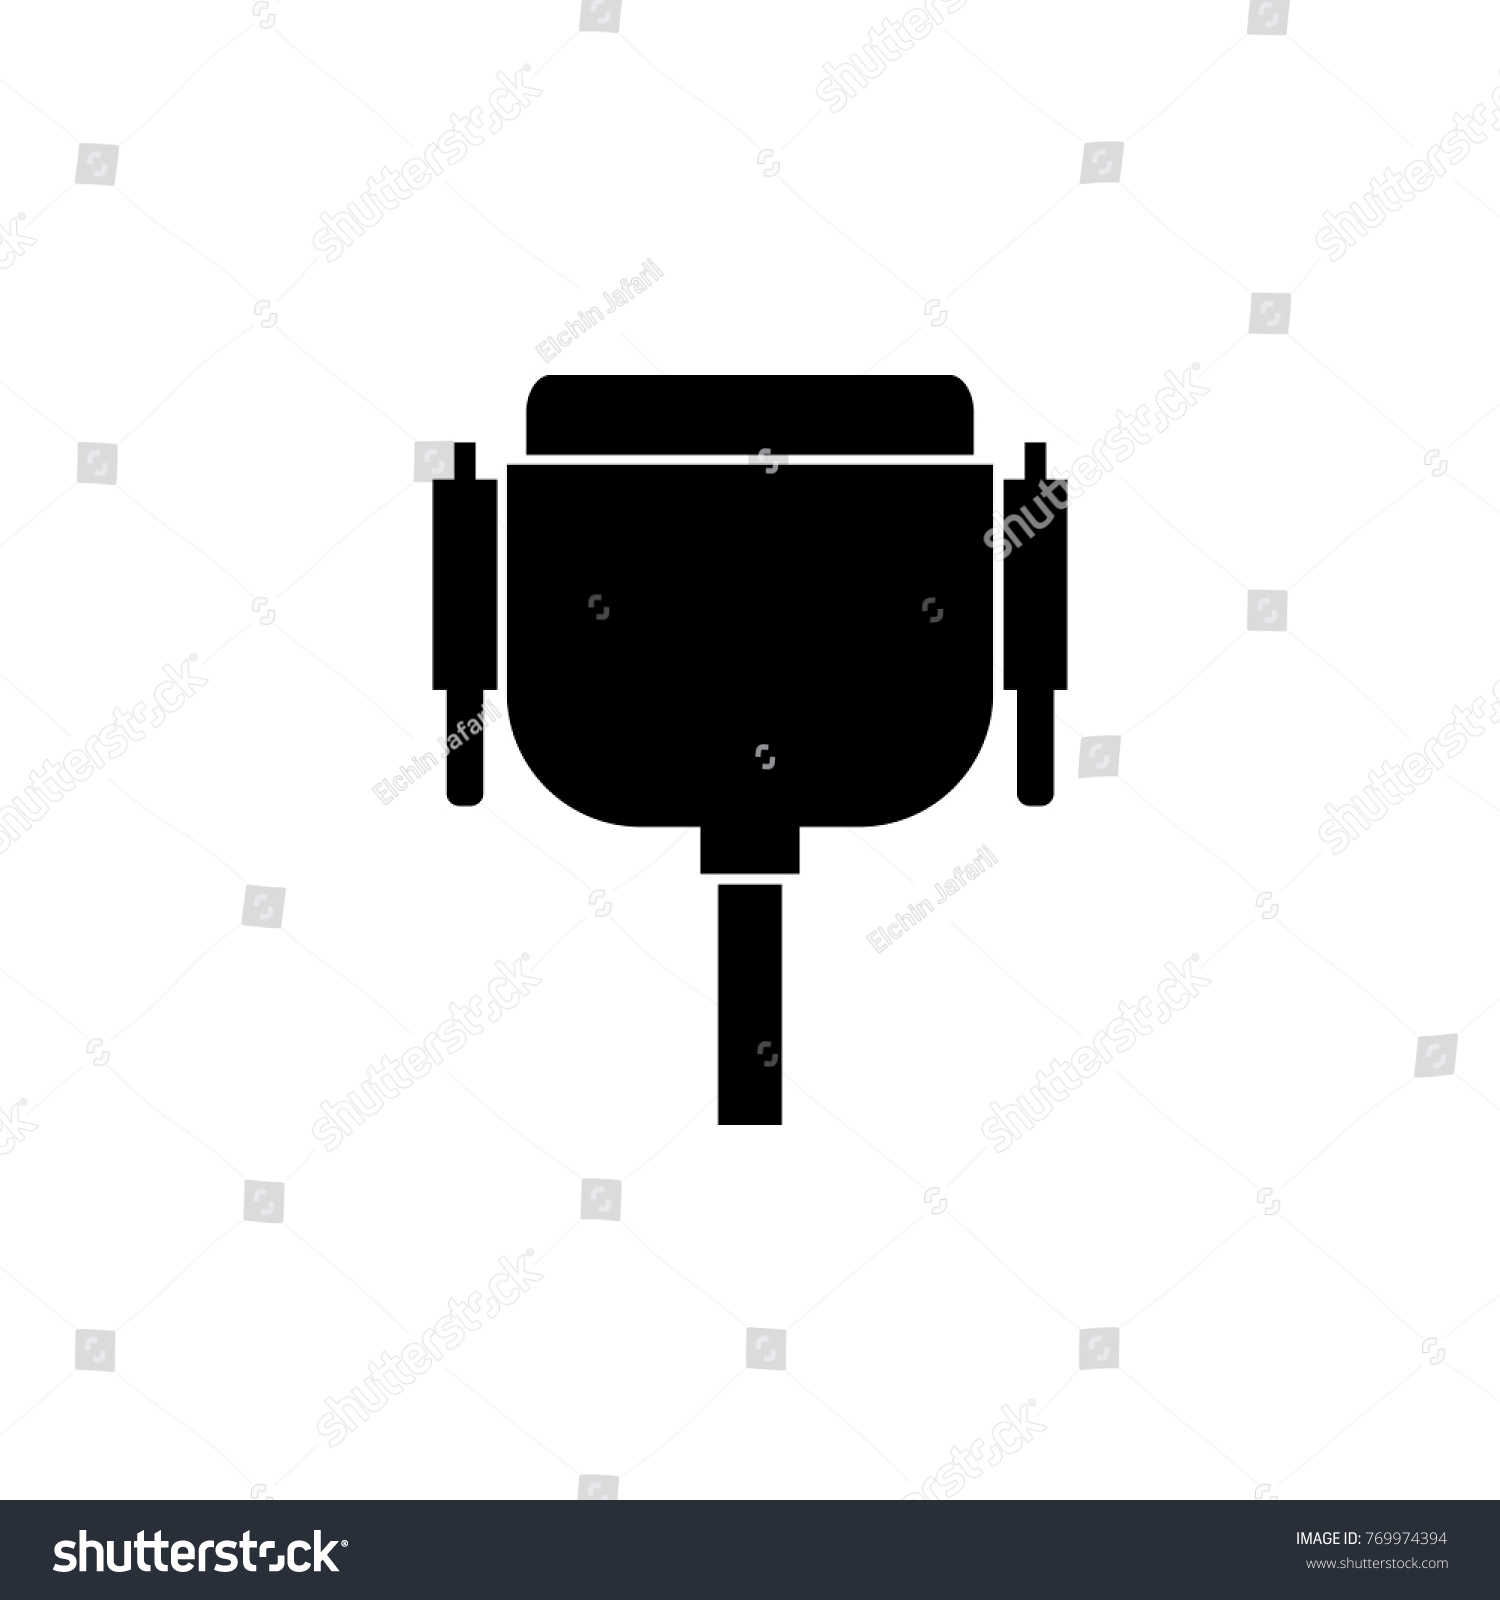 hight resolution of wiring diagram pc icon wiring diagram yer vga wire port cable icon pc stock illustration 769974394